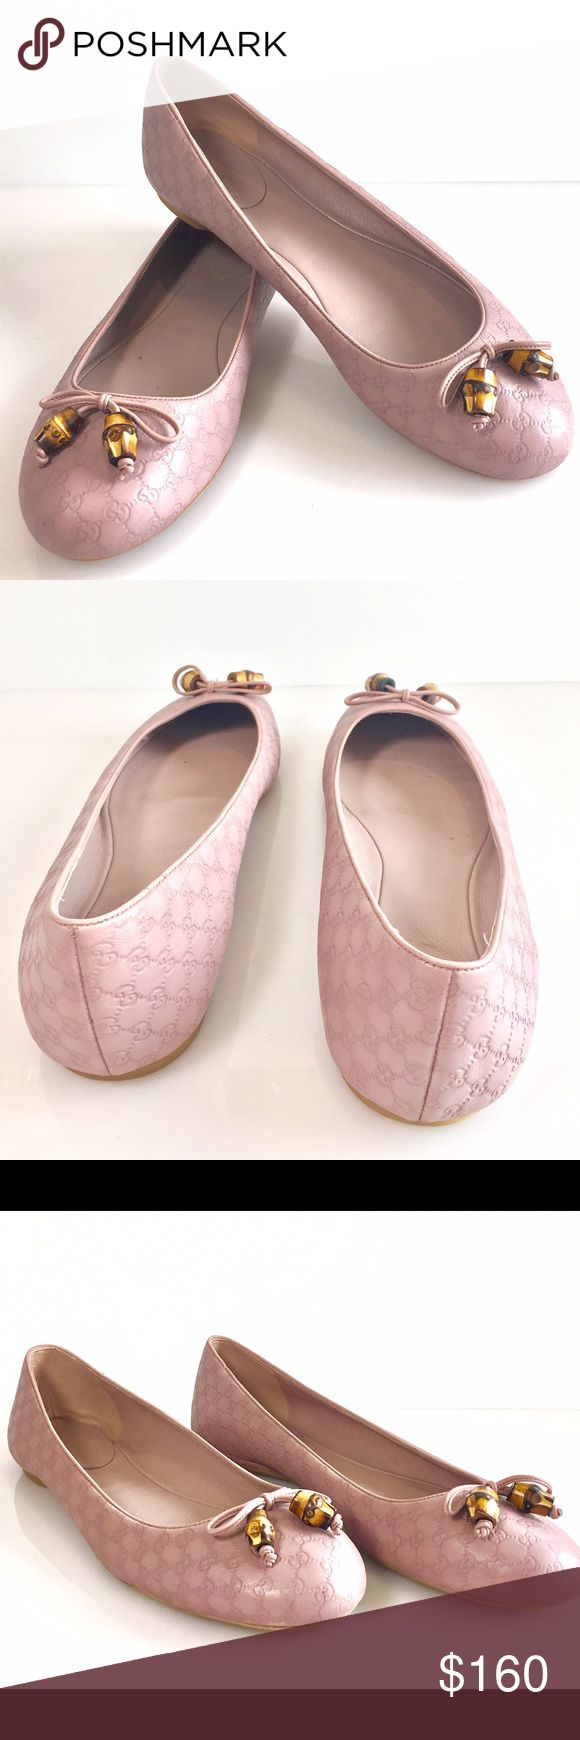 Pre-Owned Gucci Flats Pink Monogram Size 40 Stunning Gucci classic flats! Amazing conditions ! Gucci Shoes Flats & Loafers